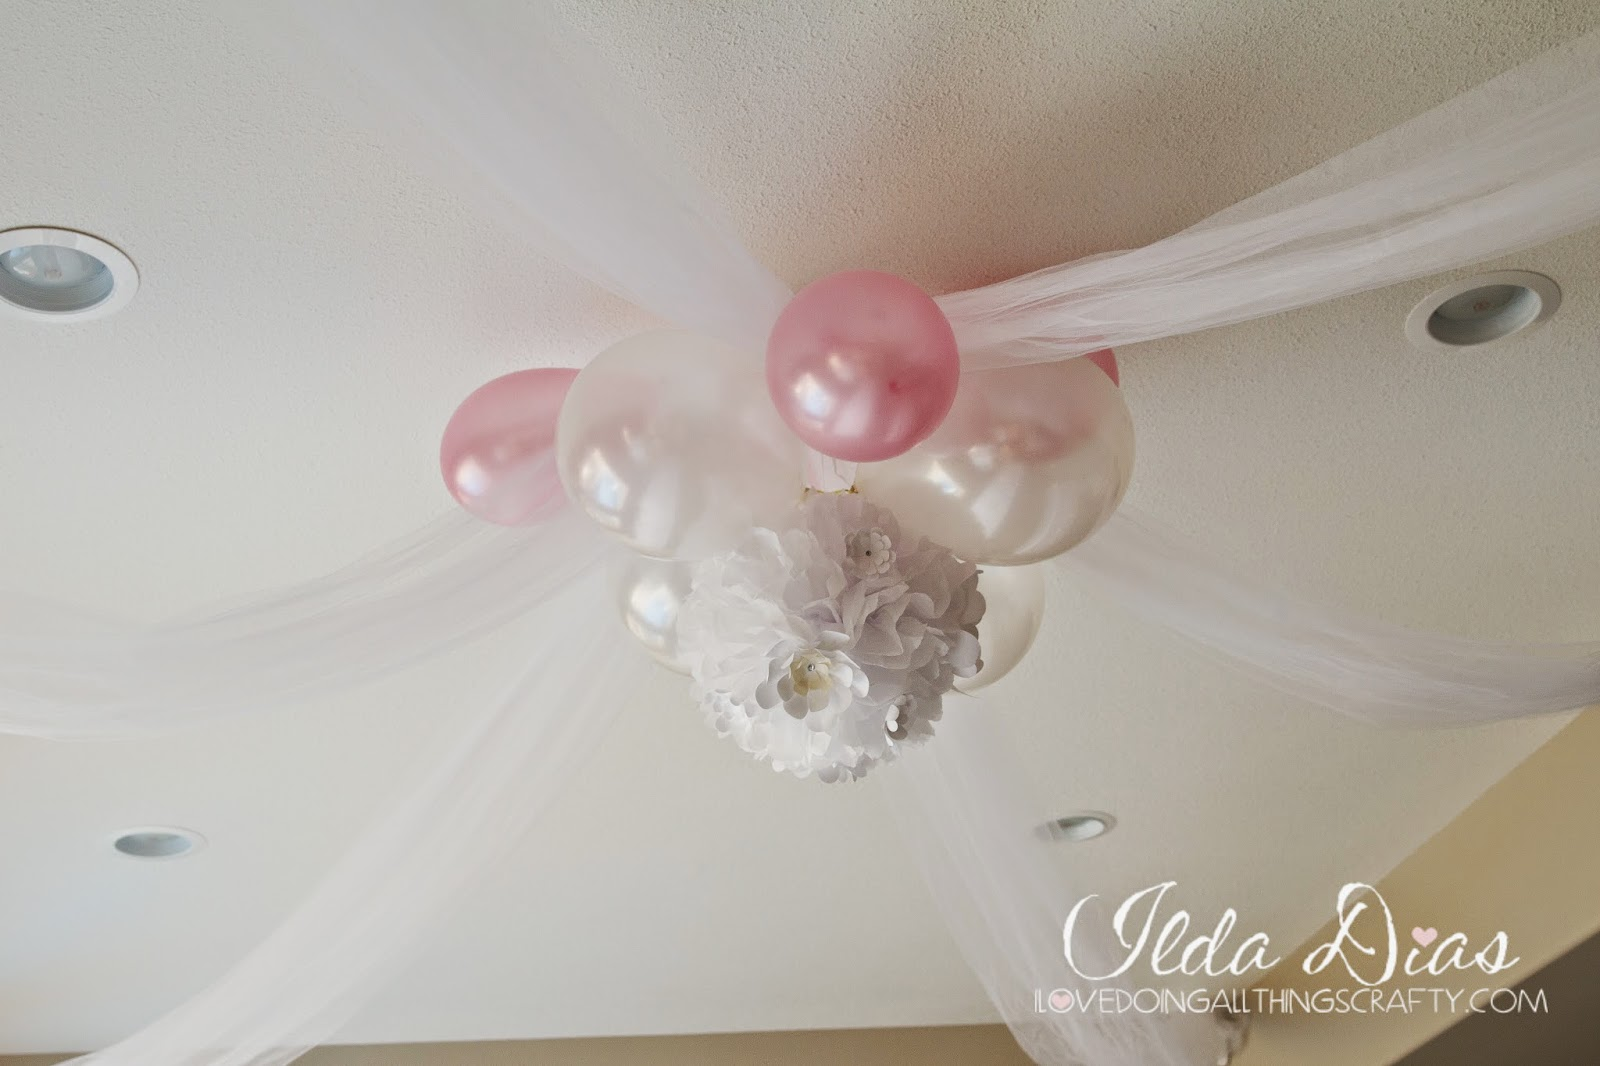 First Communion Day + DIY Decor, Ceiling Decotation